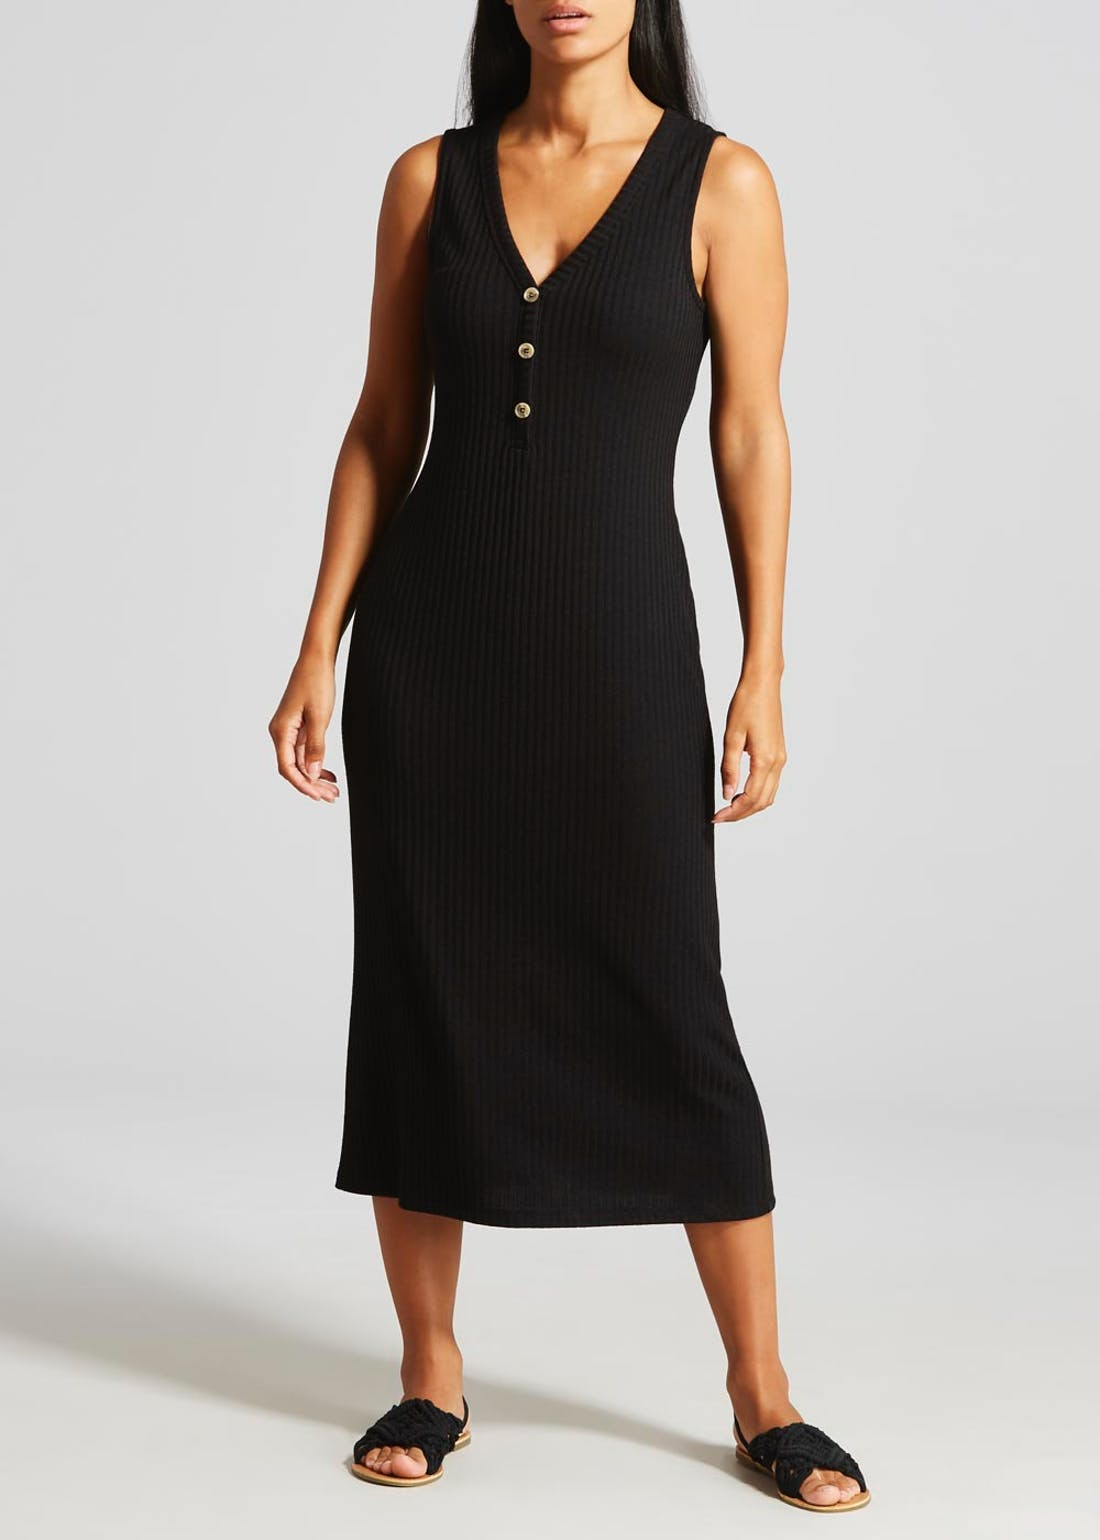 Papaya Petite Black Sleeveless Ribbed Midi Dress